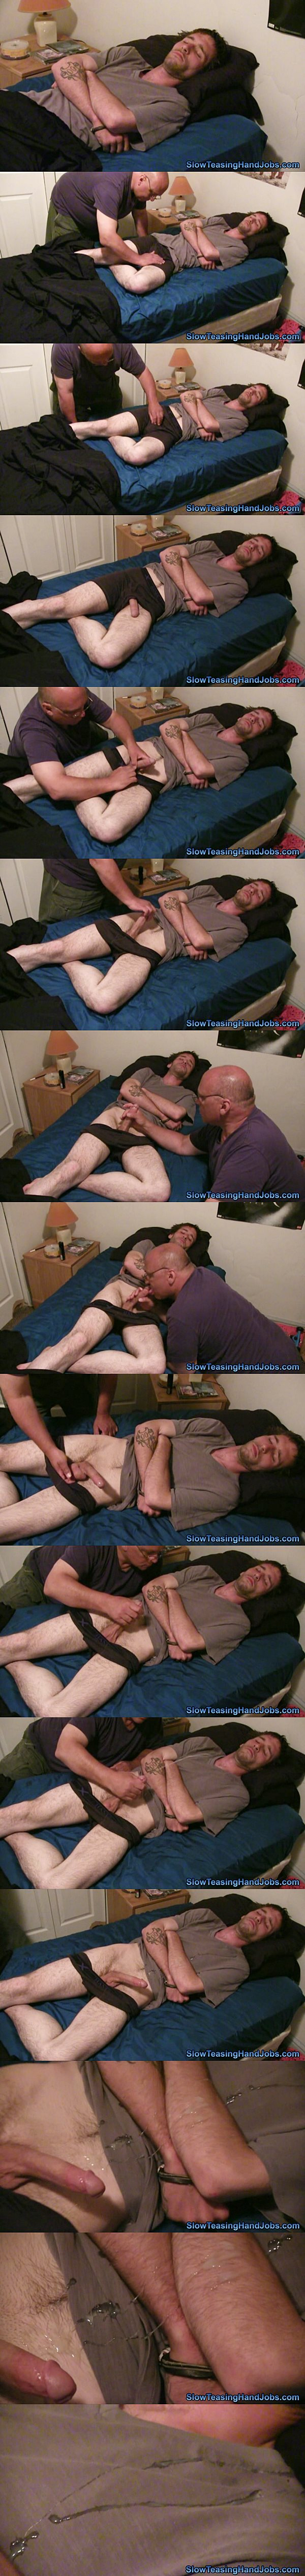 Hot straight lad Jim gets his big loads jerked off his hard cock in Sleeping Jim's Slow Hand Job at Slowteasinghandjobs 02